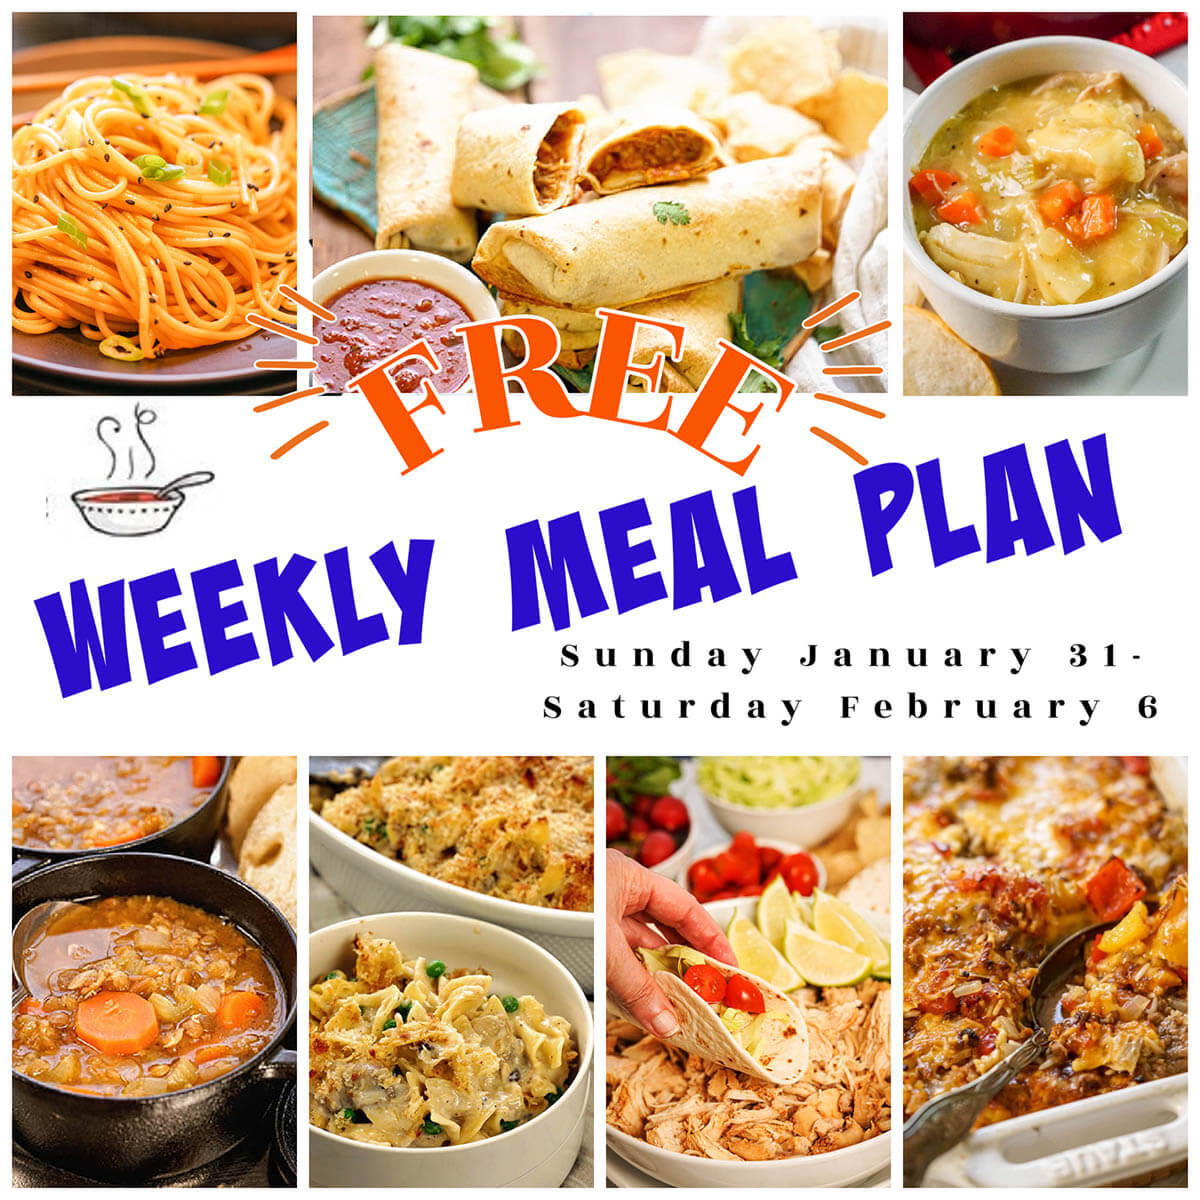 A collage of photos showing a weekly meal plan for Jan 31-Feb 6th.